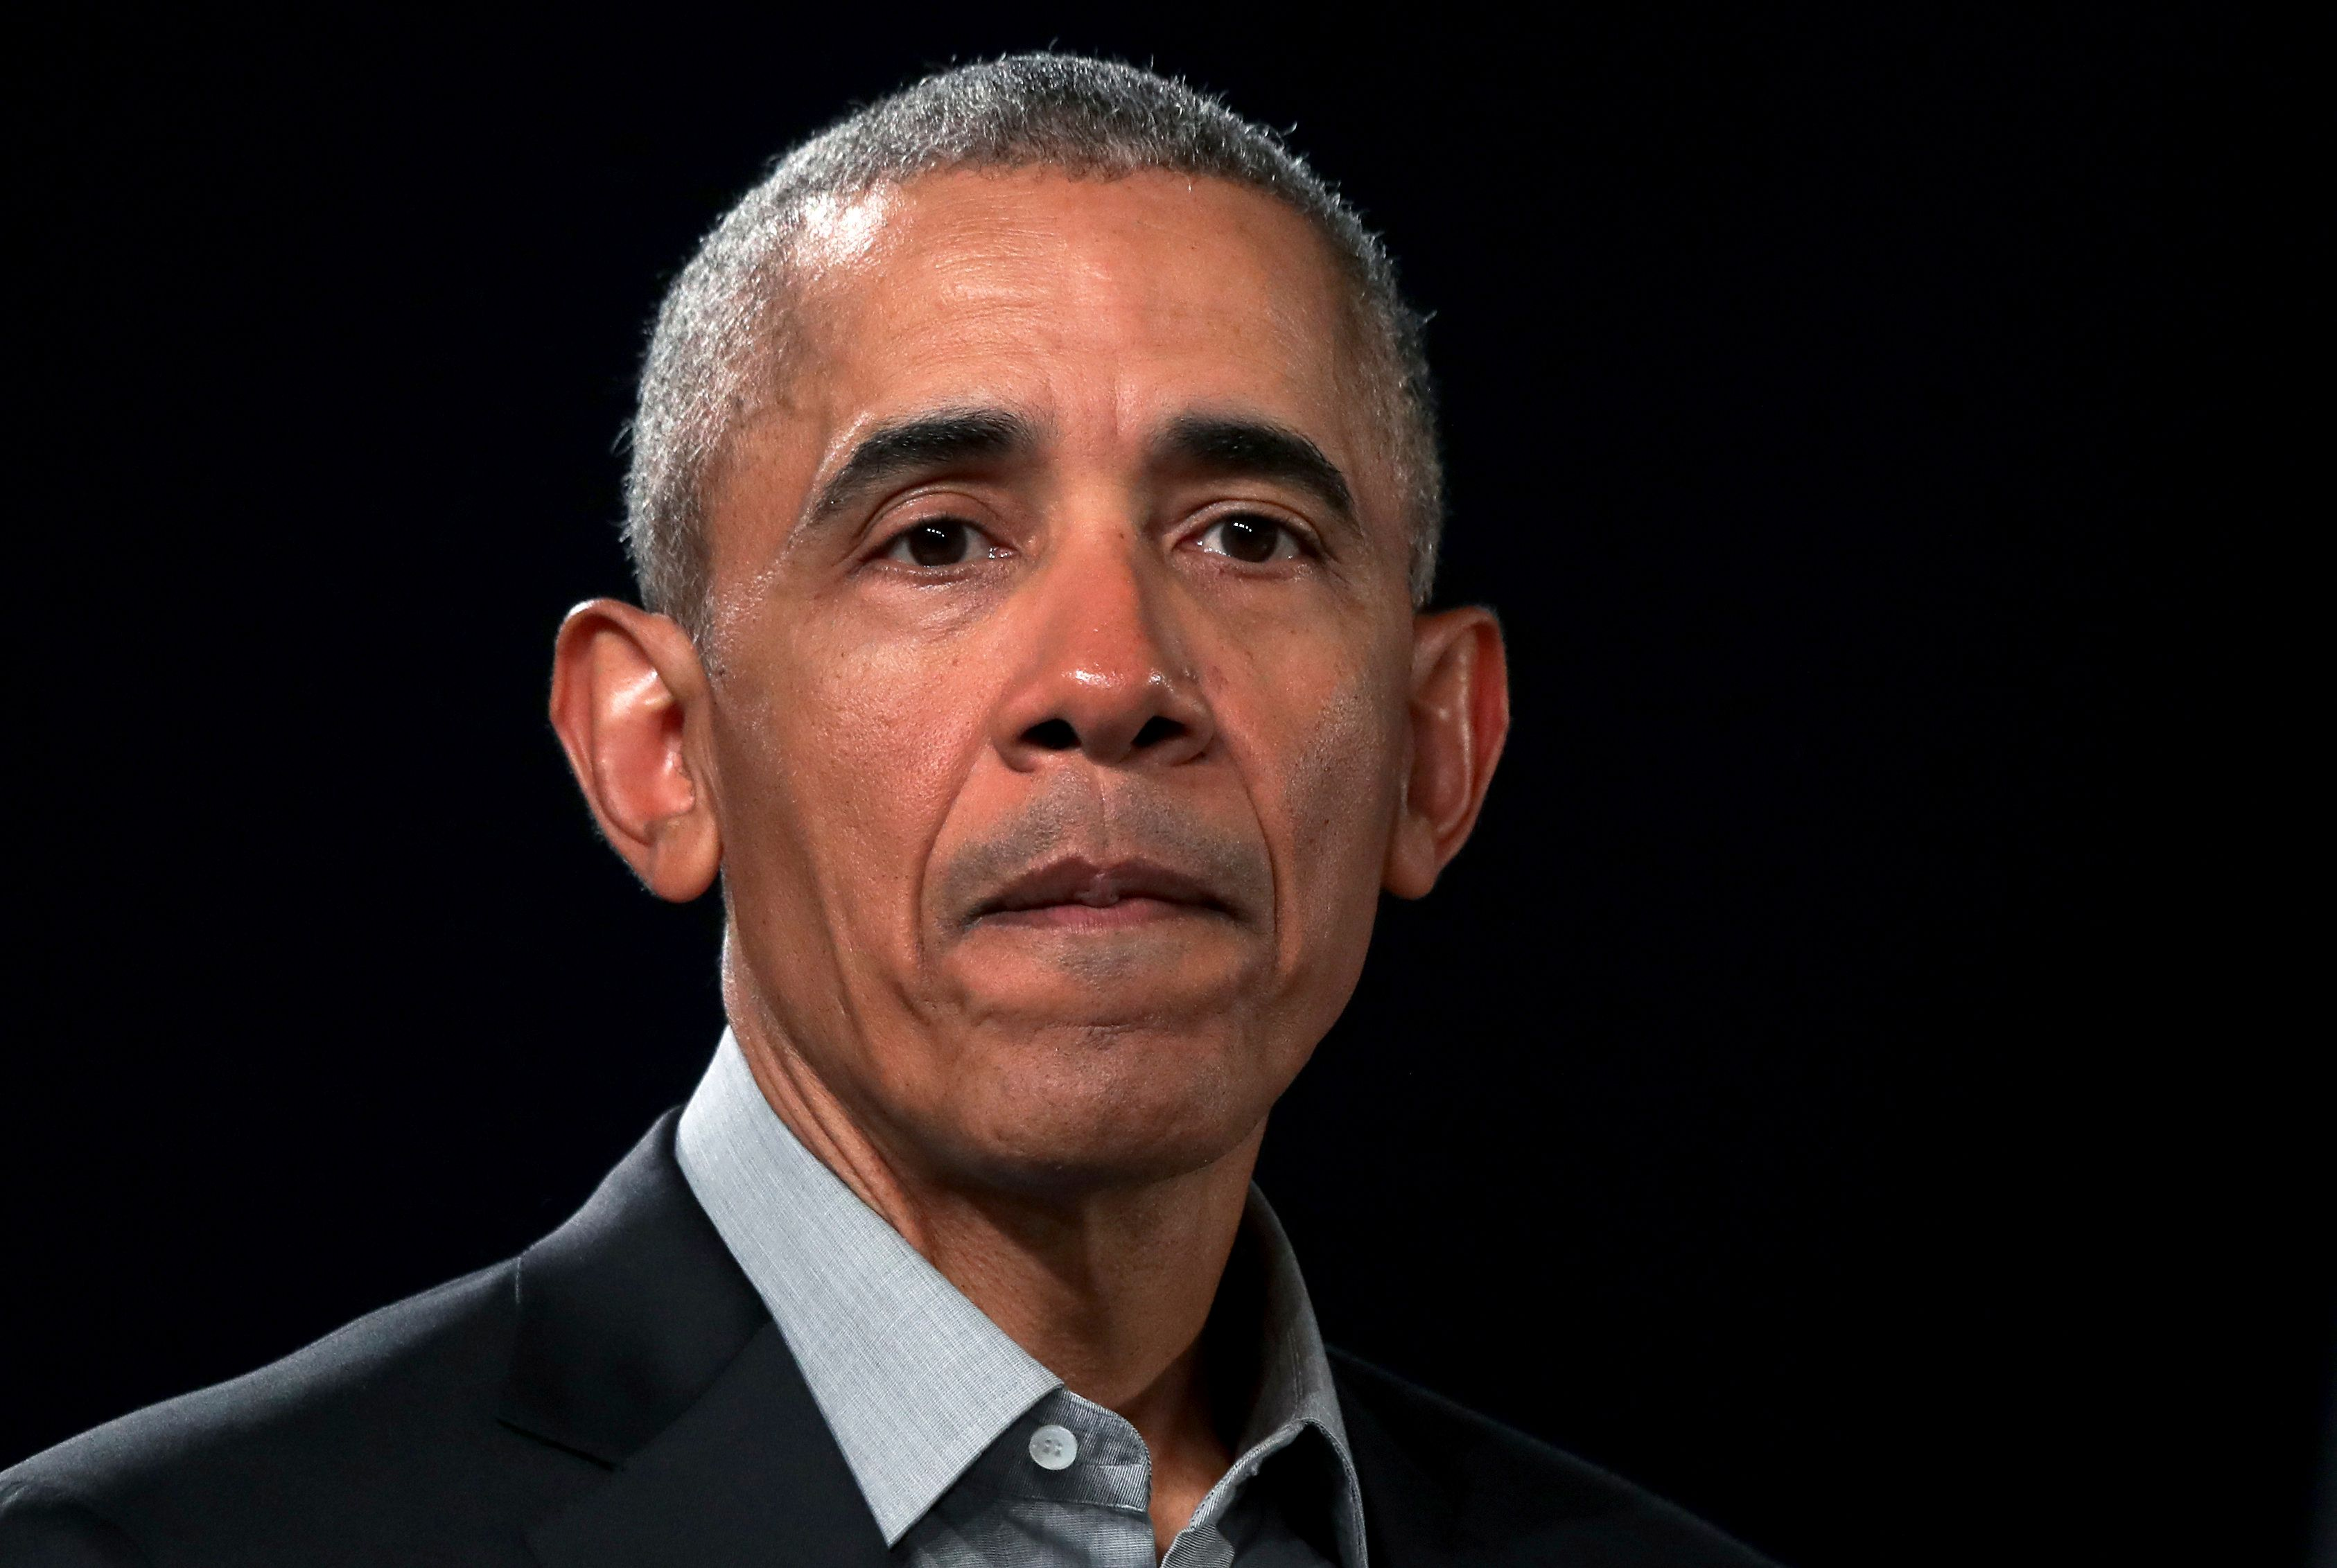 Obama Fears Progressives Are Too Obsessed With